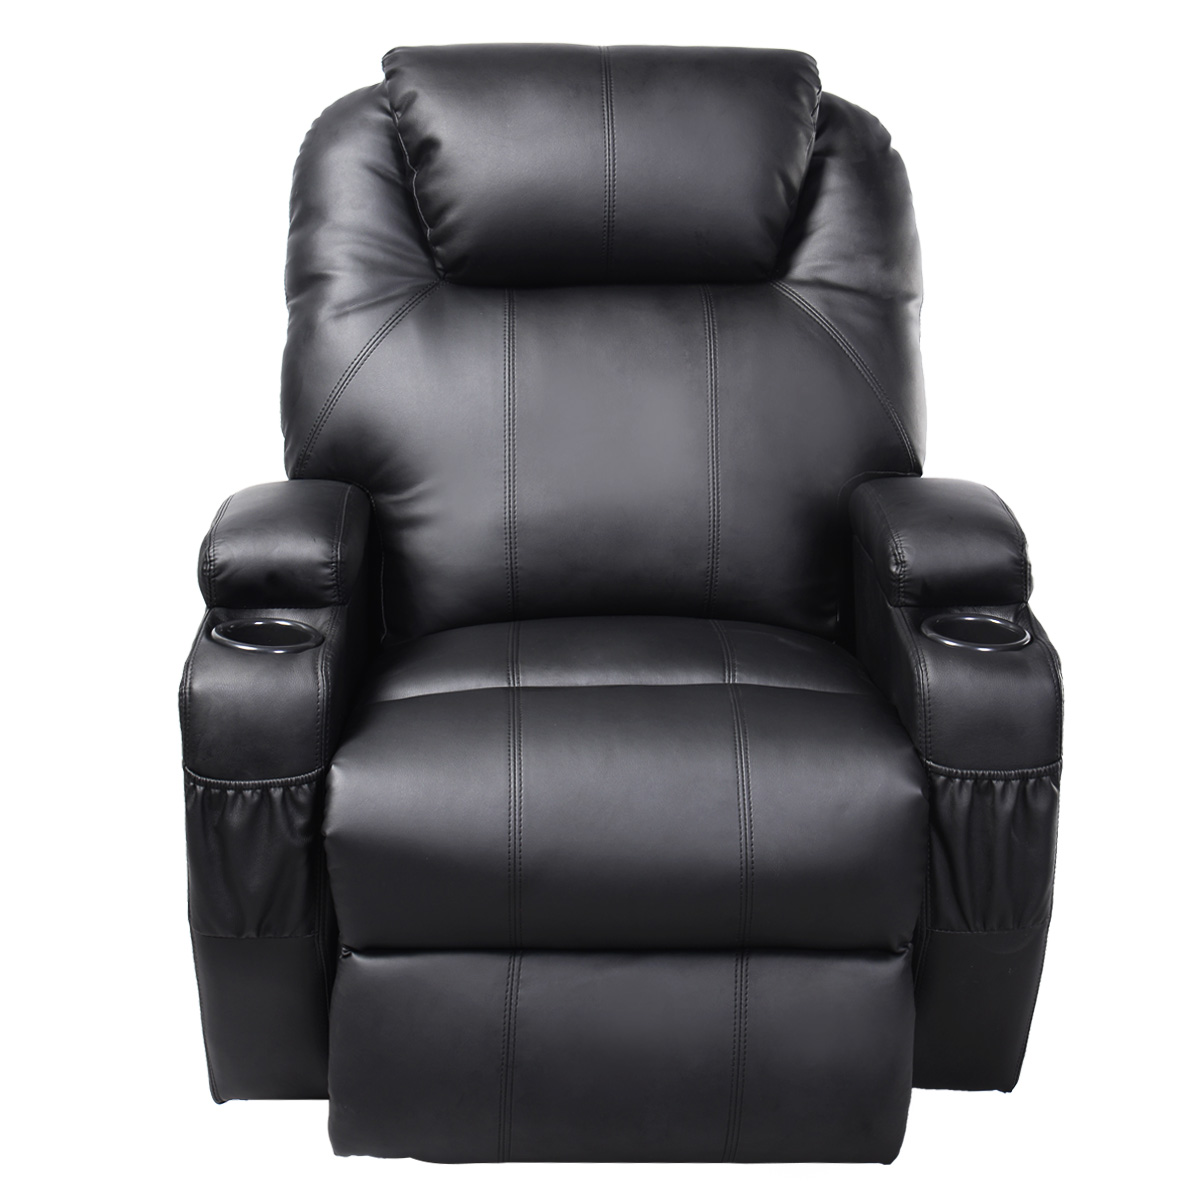 Cavendish Dual Motor Rise And Recline Chair Elite Care